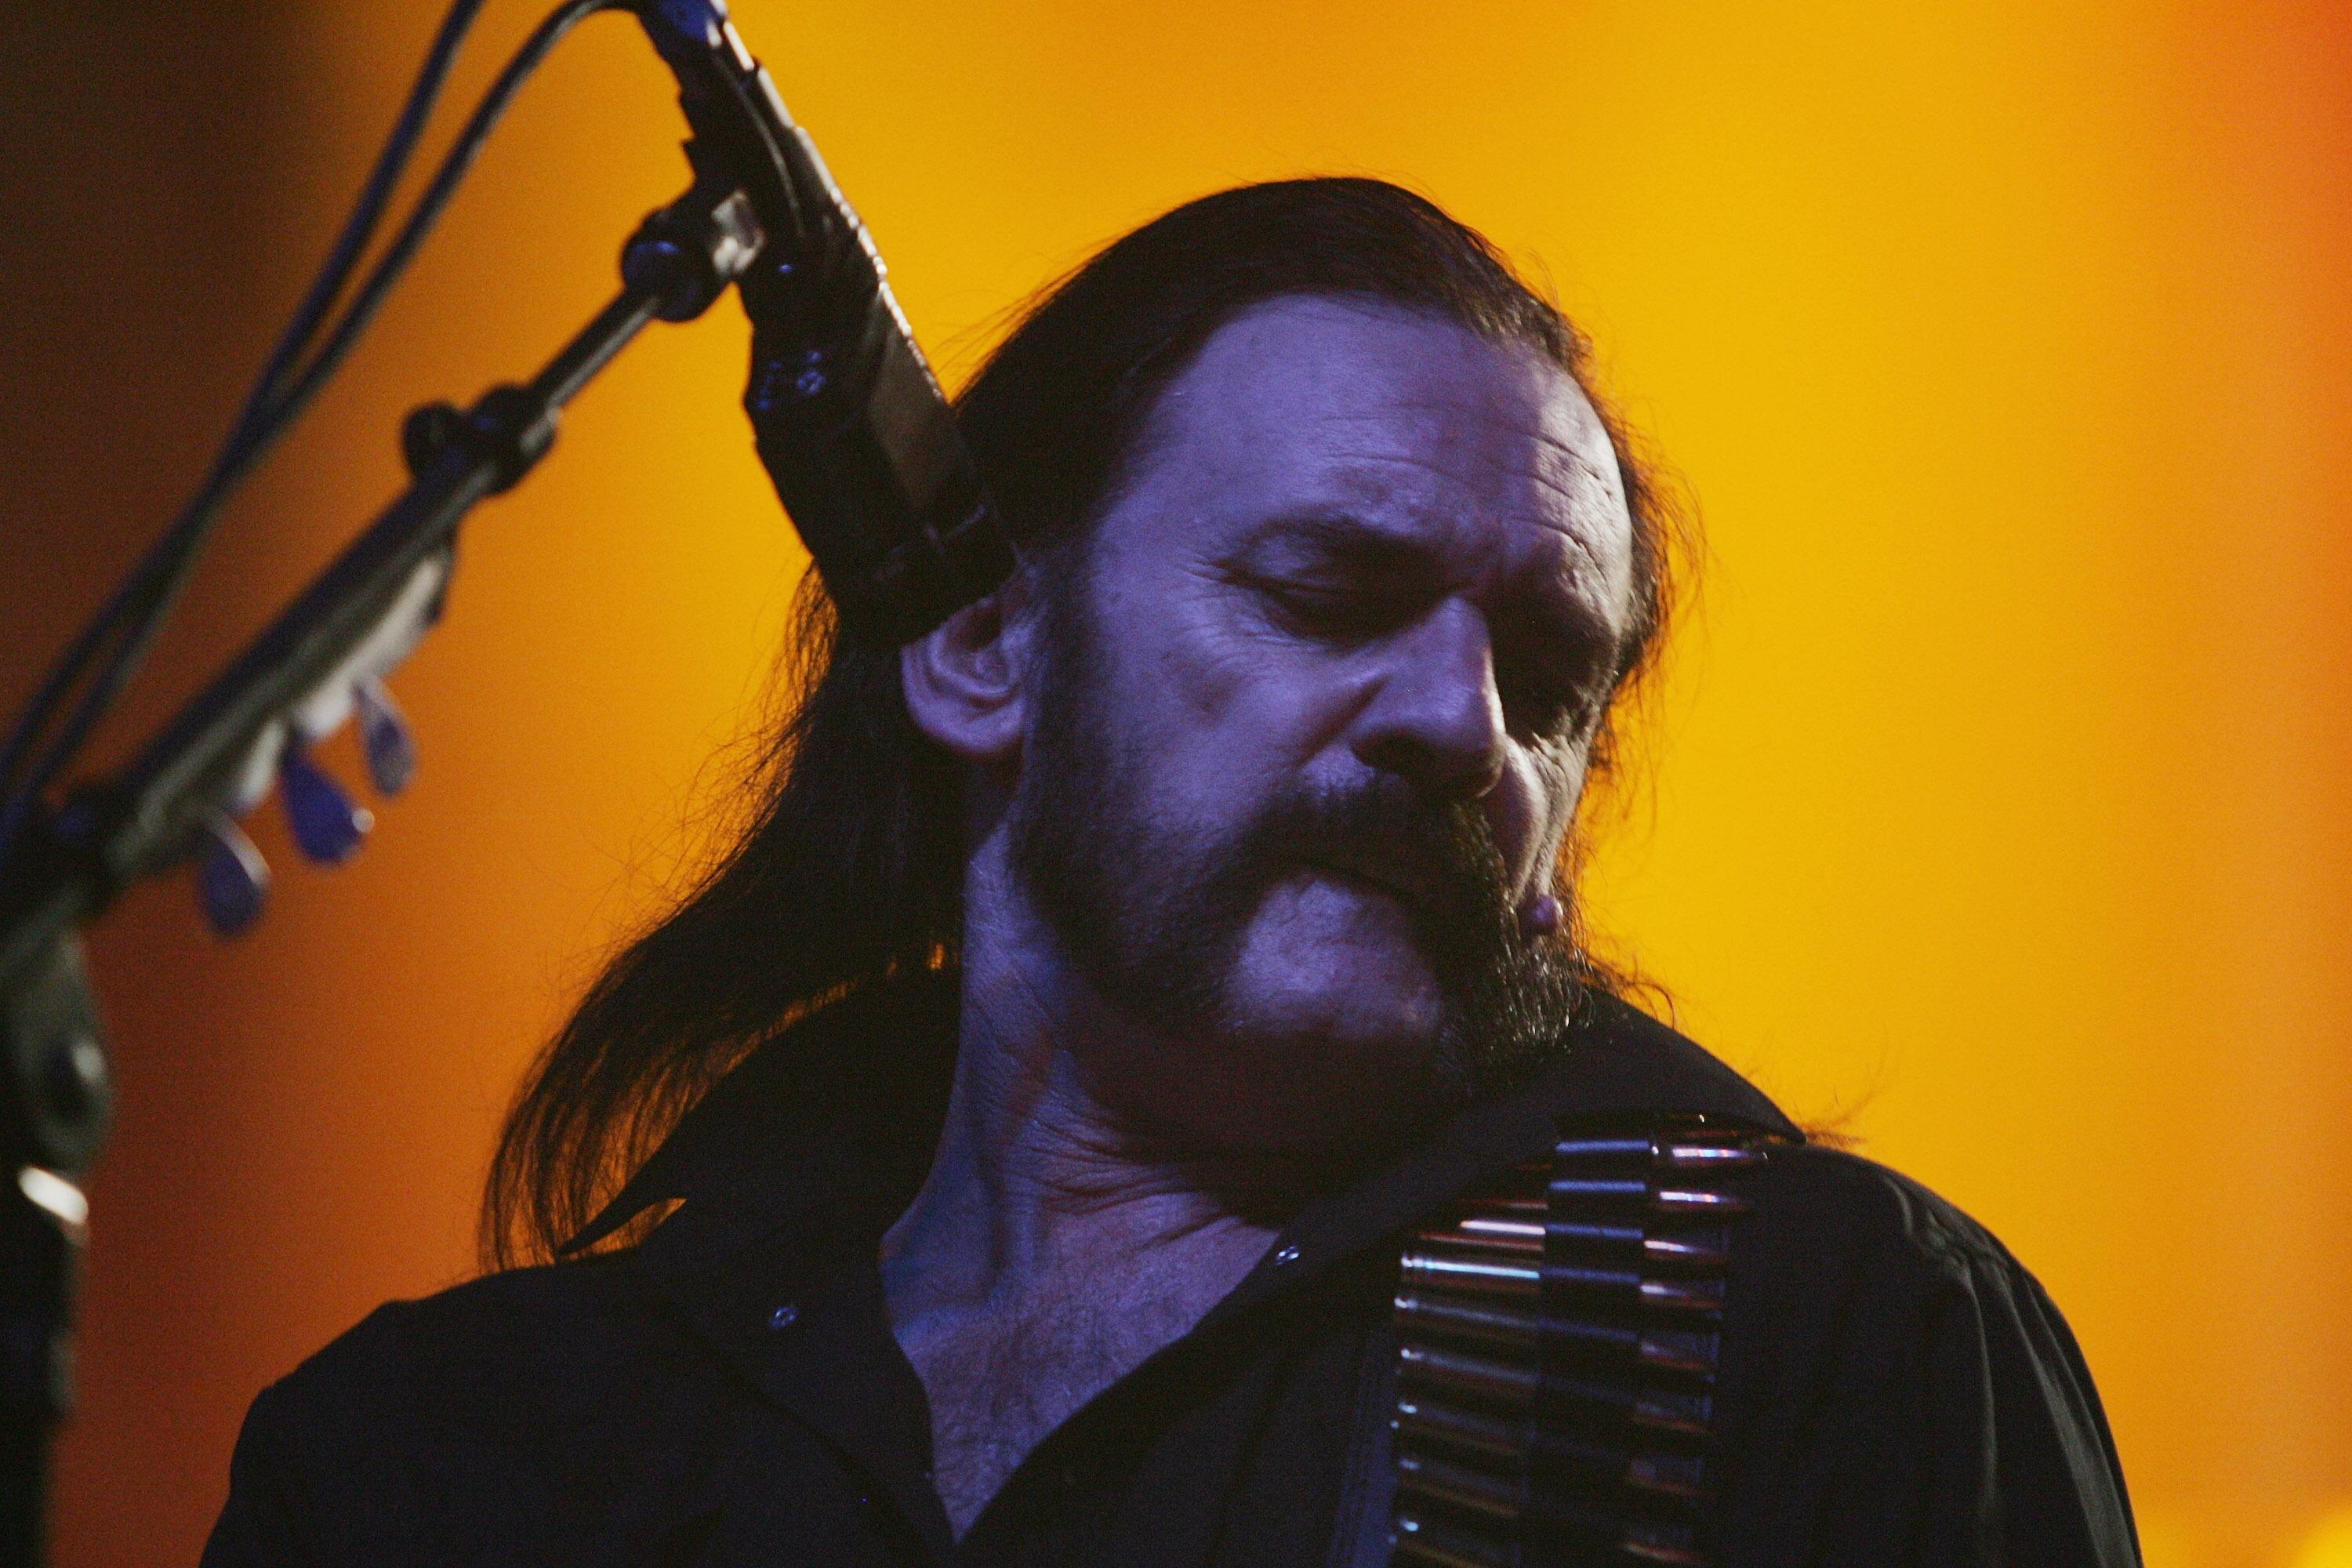 Lemmy Kilmister's Ashes Have Been Placed In Bullet Shells Given To Friends